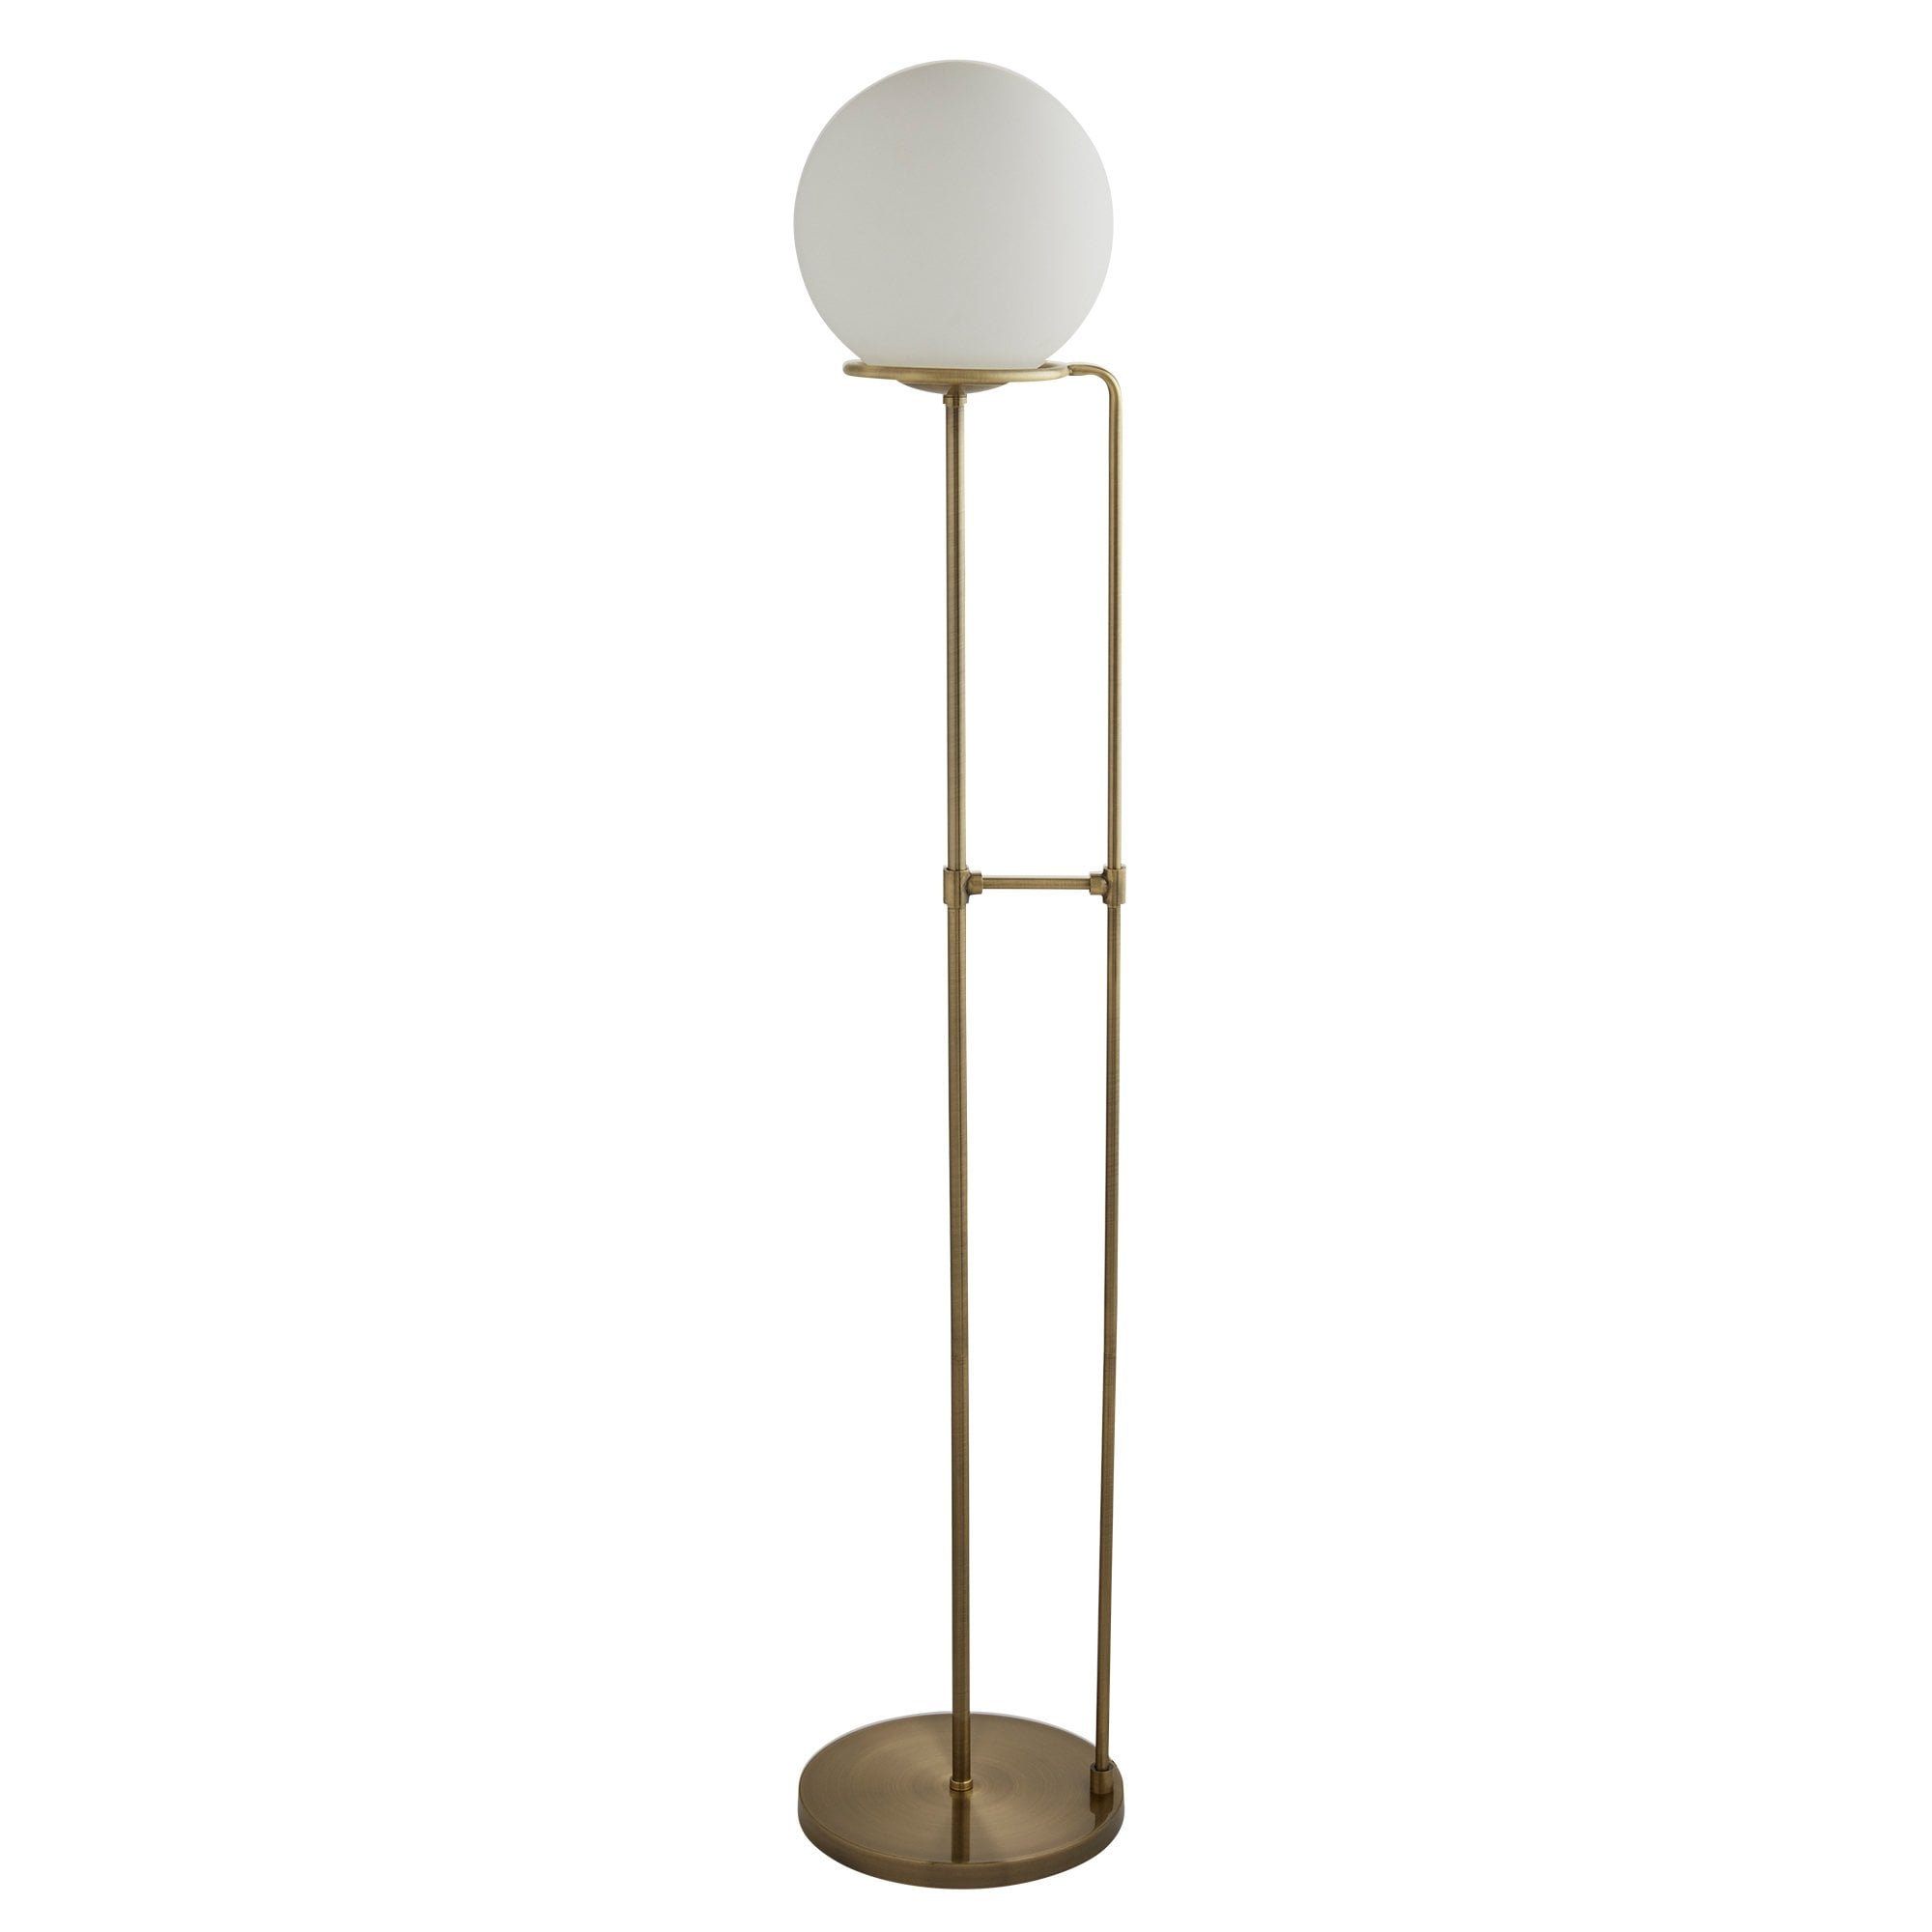 SPHERE antique brass floor lamp with opal glass shade